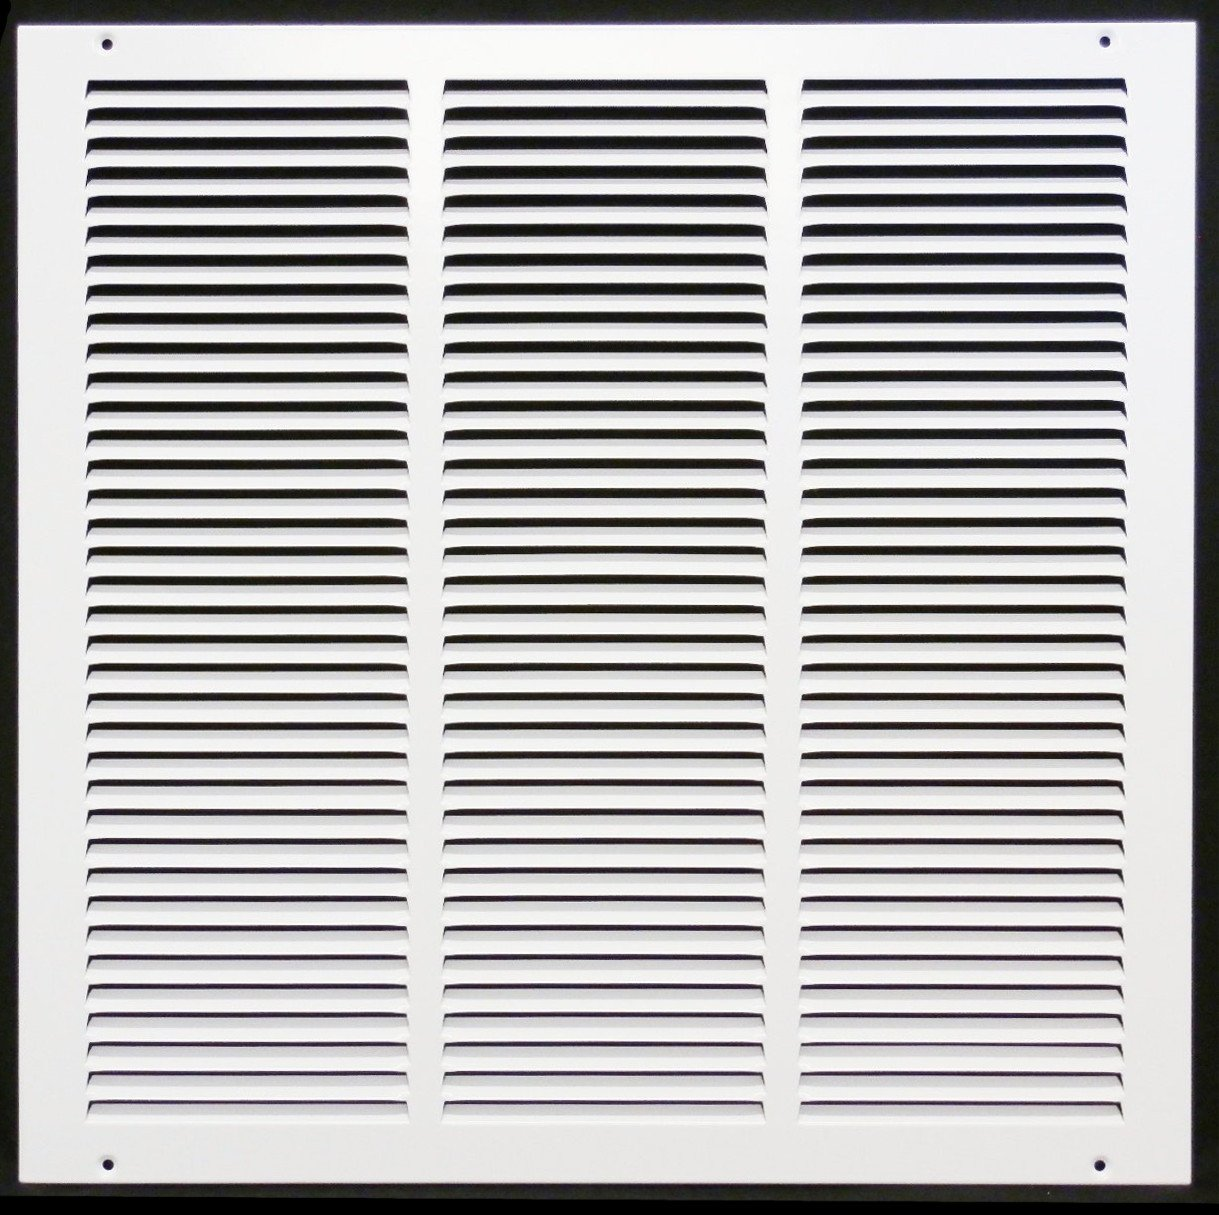 """16""""w X 16""""h Steel Return Air Grilles - Sidewall and Ceiling - HVAC Duct Cover - White [Outer Dimensions: 17.75""""w X 17.75""""h]"""